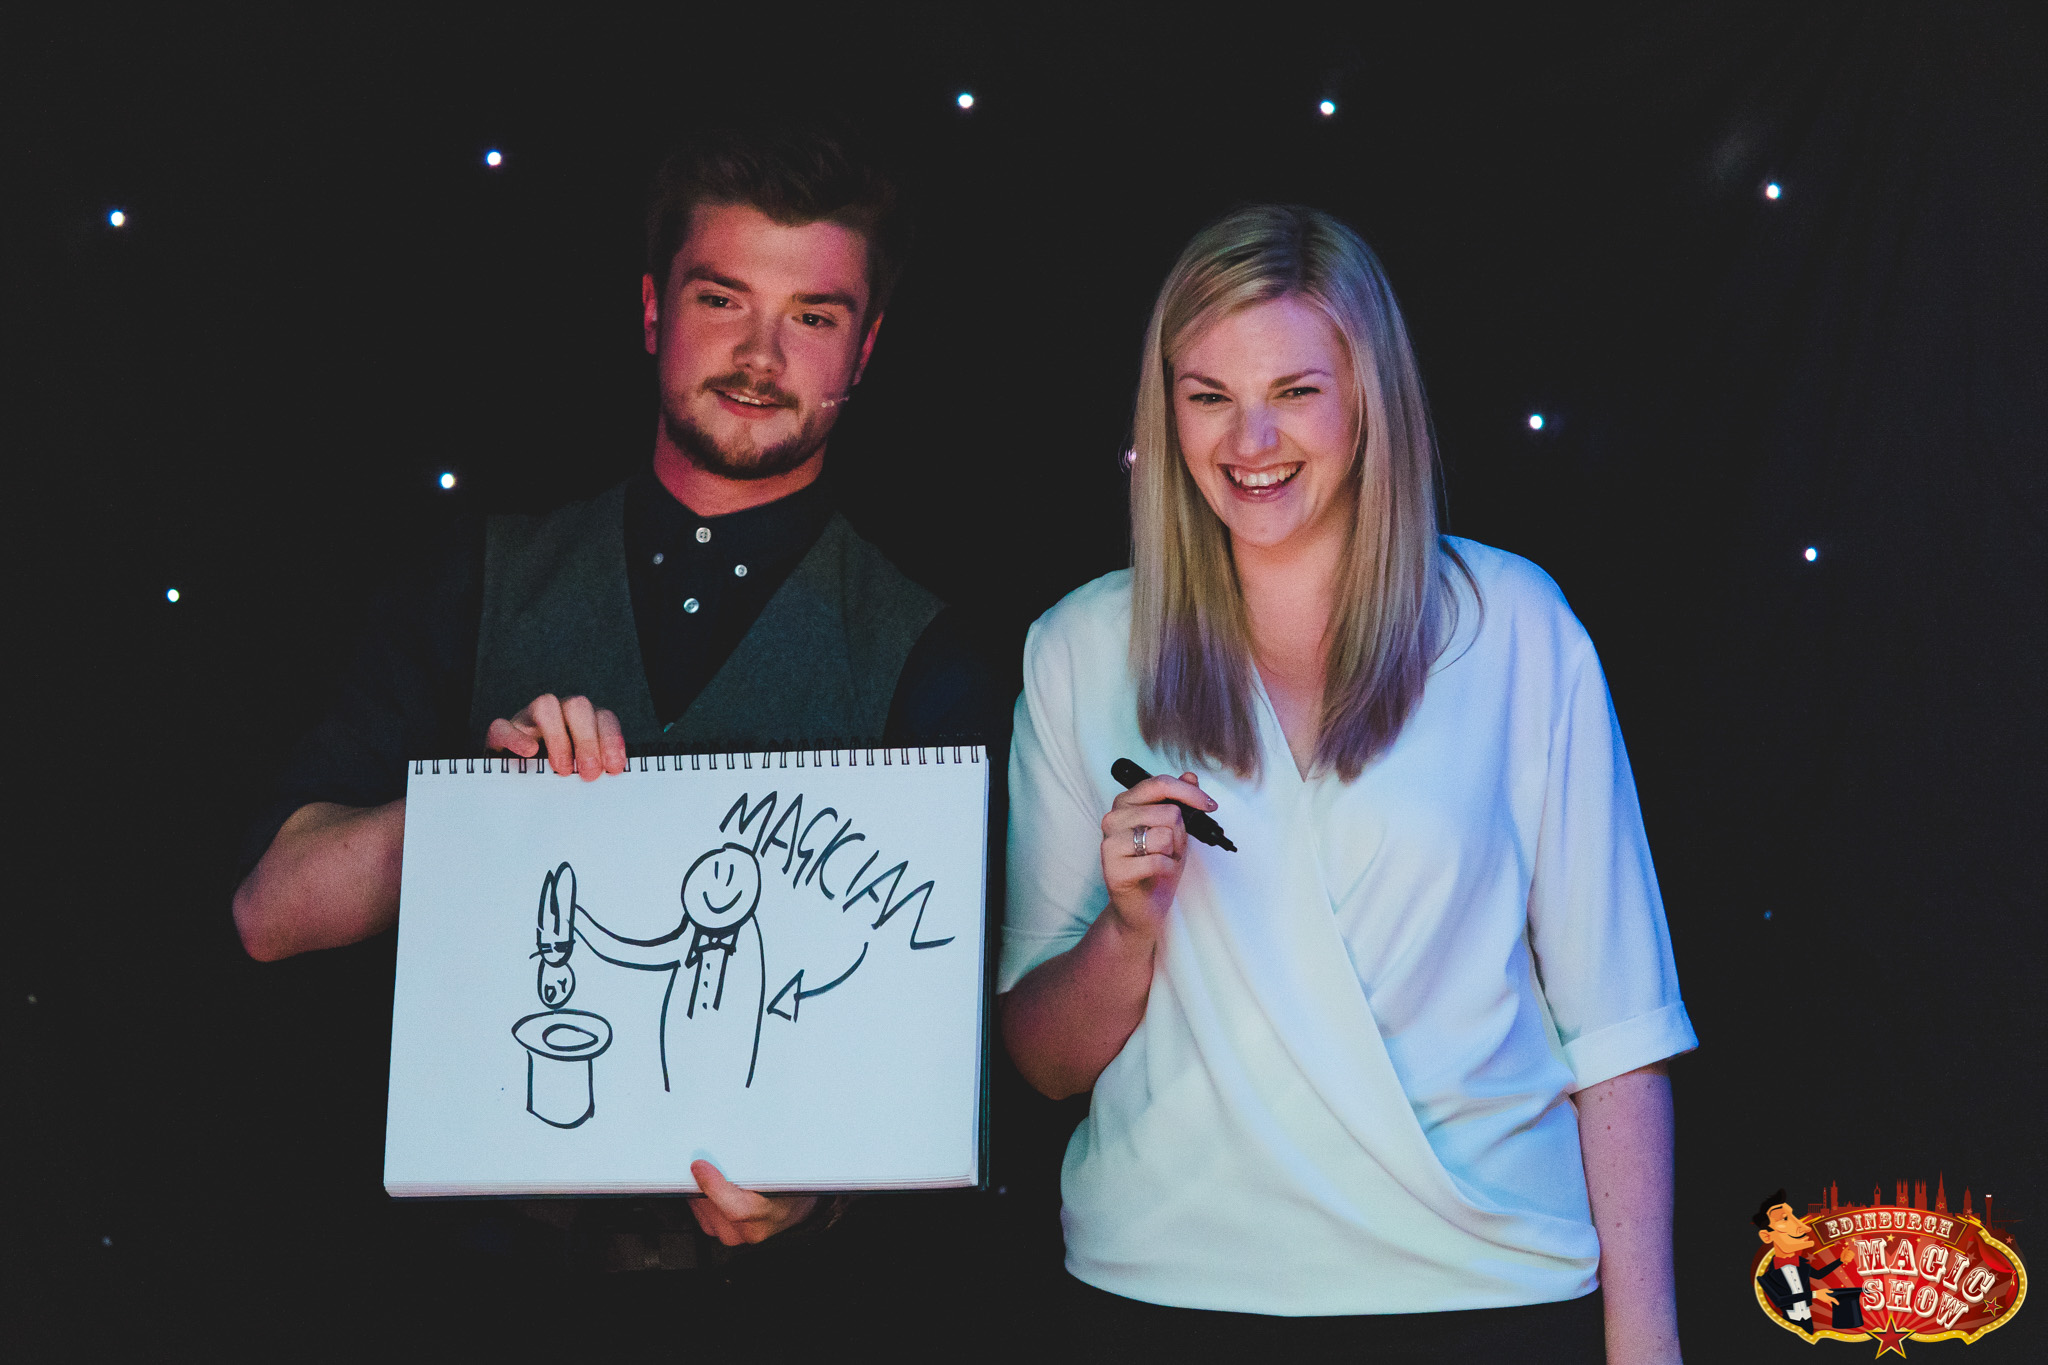 Magician & Assistant At Edinburgh Magic Show